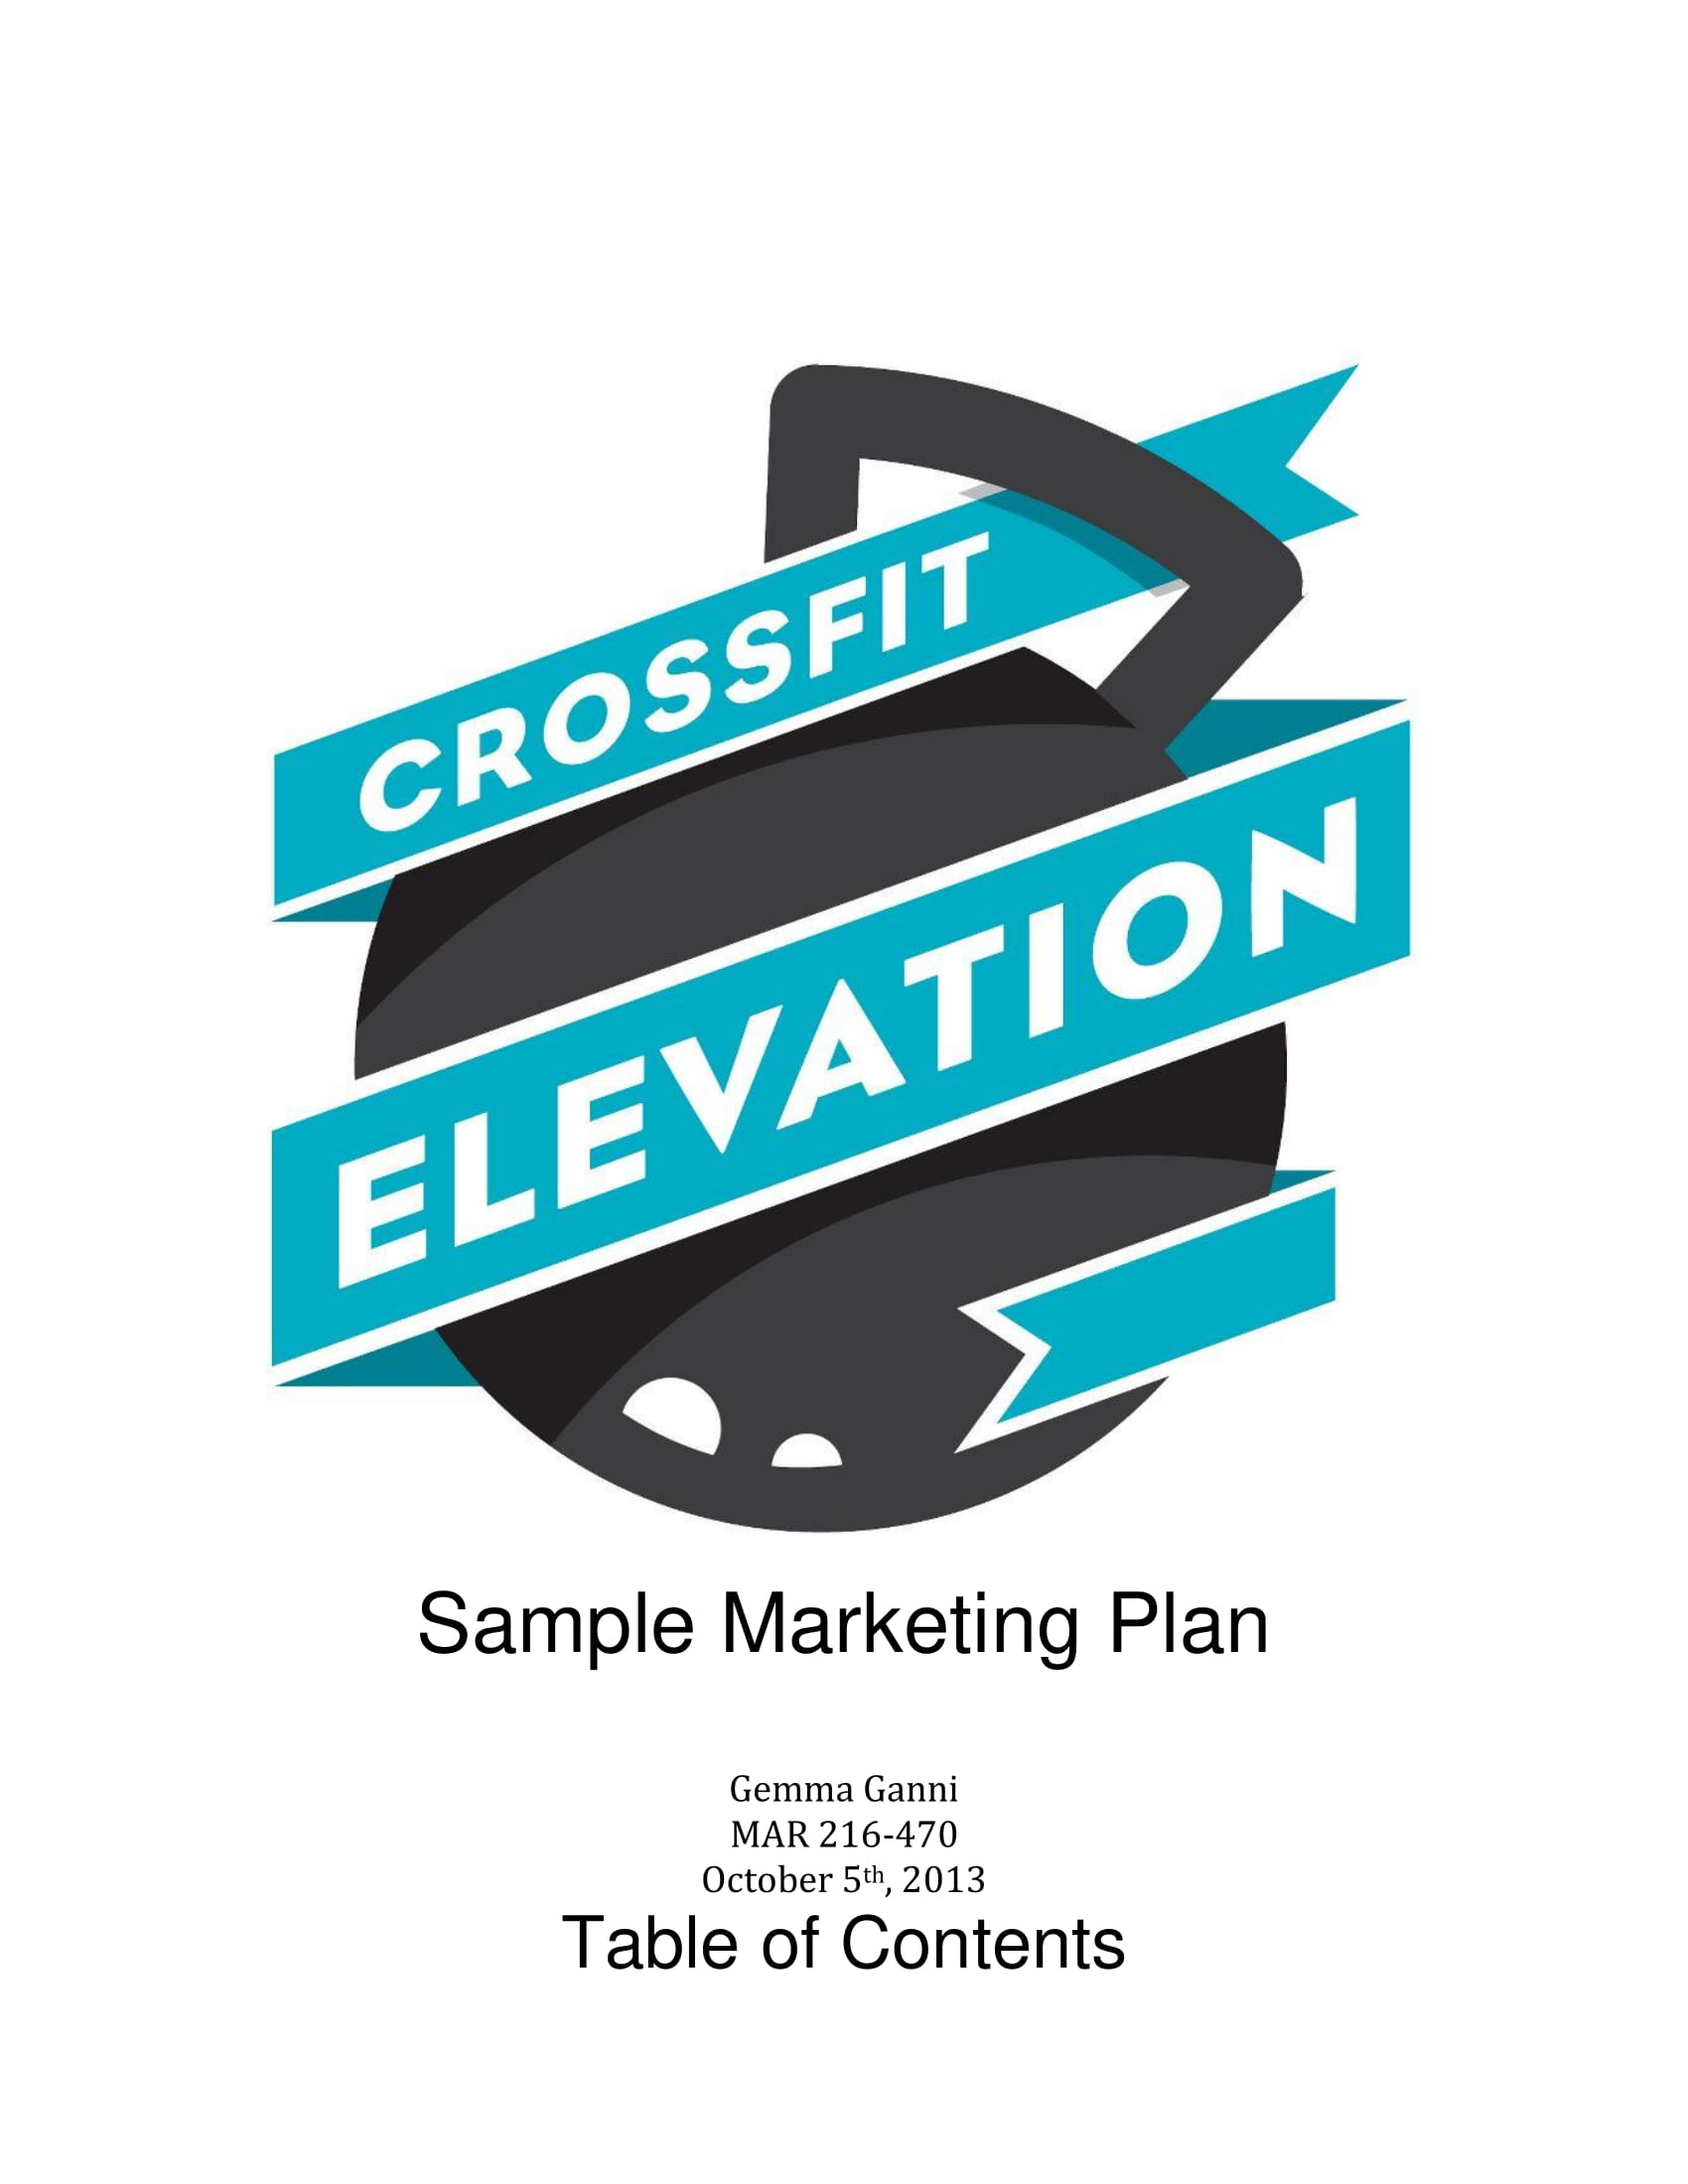 crossfit marketing action plan example